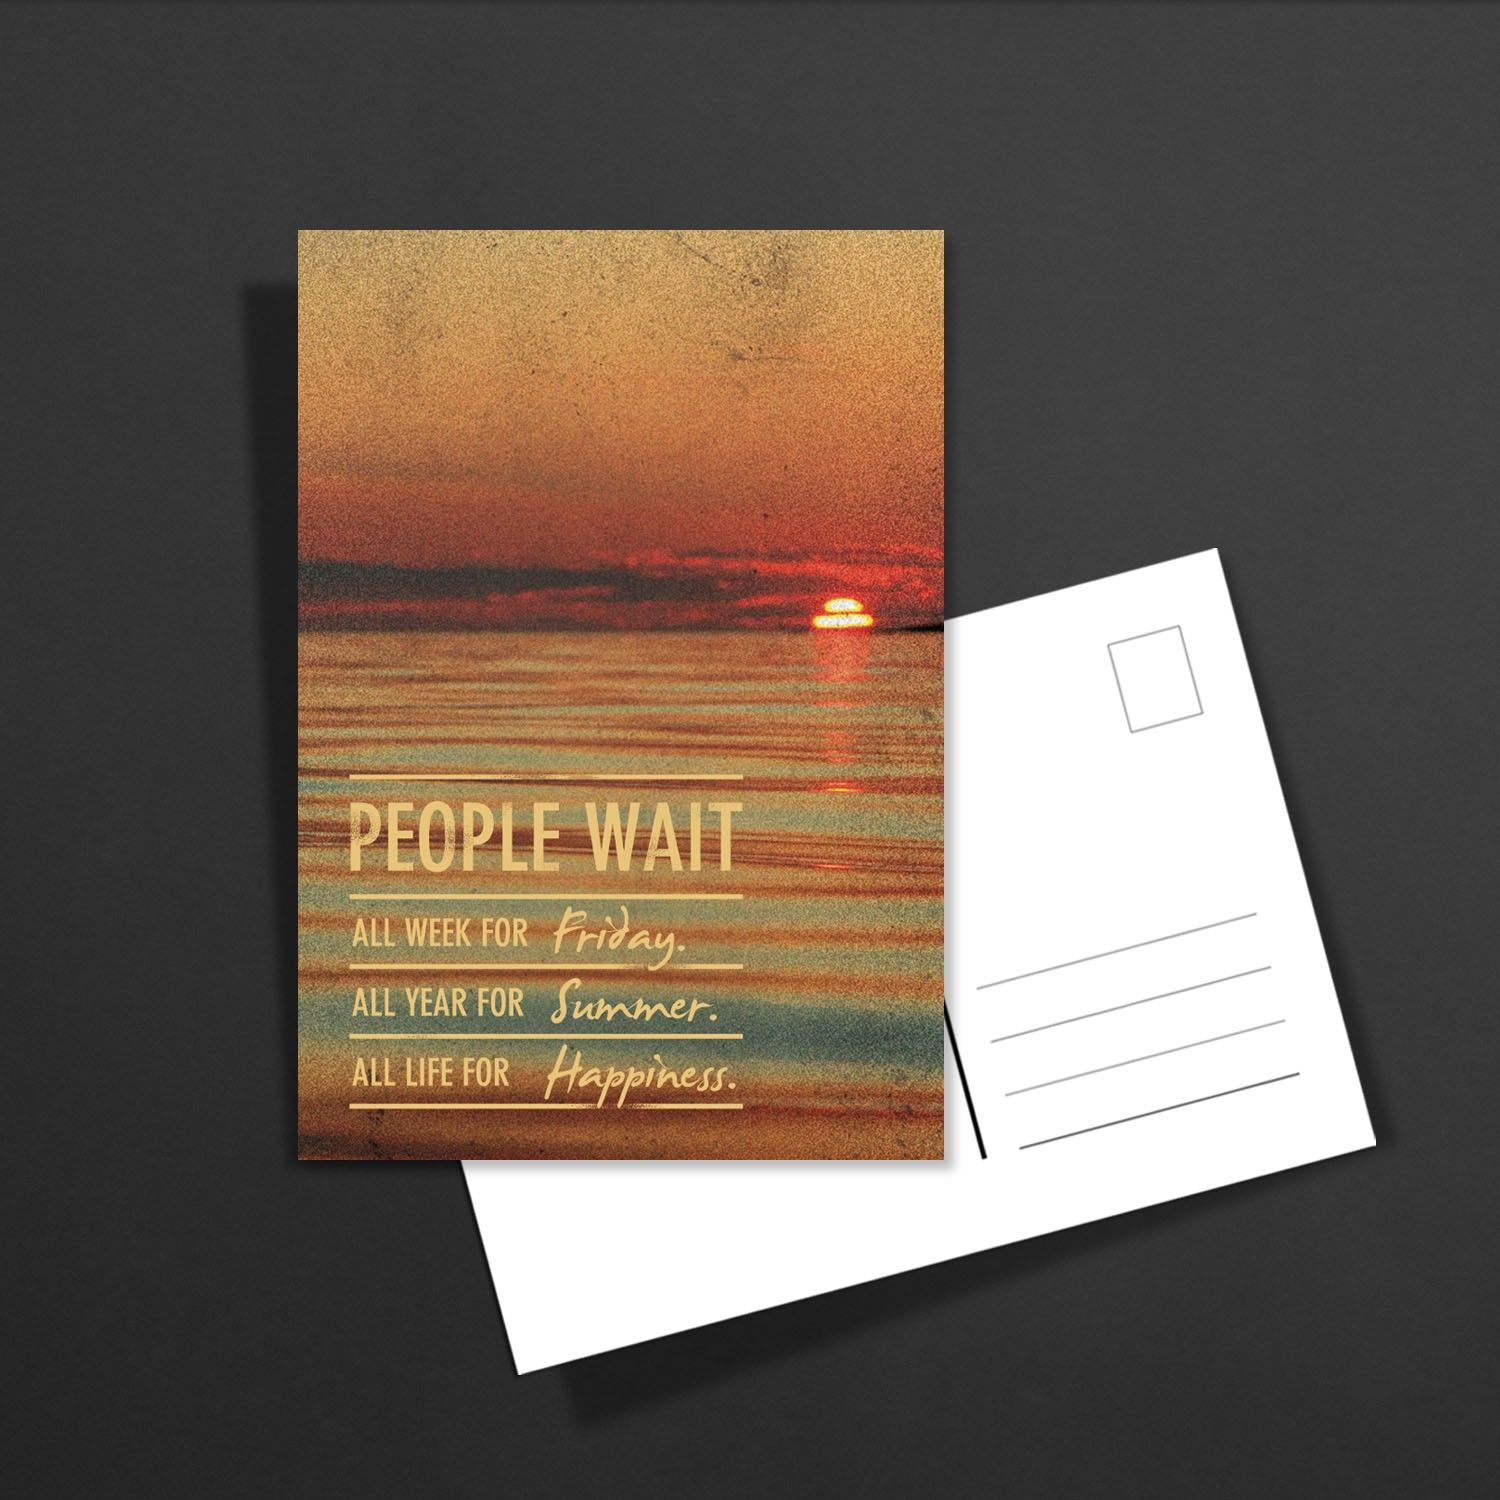 POSTKARTE people wait all week for friday. all year for summer. all life for happiness: 1,60€